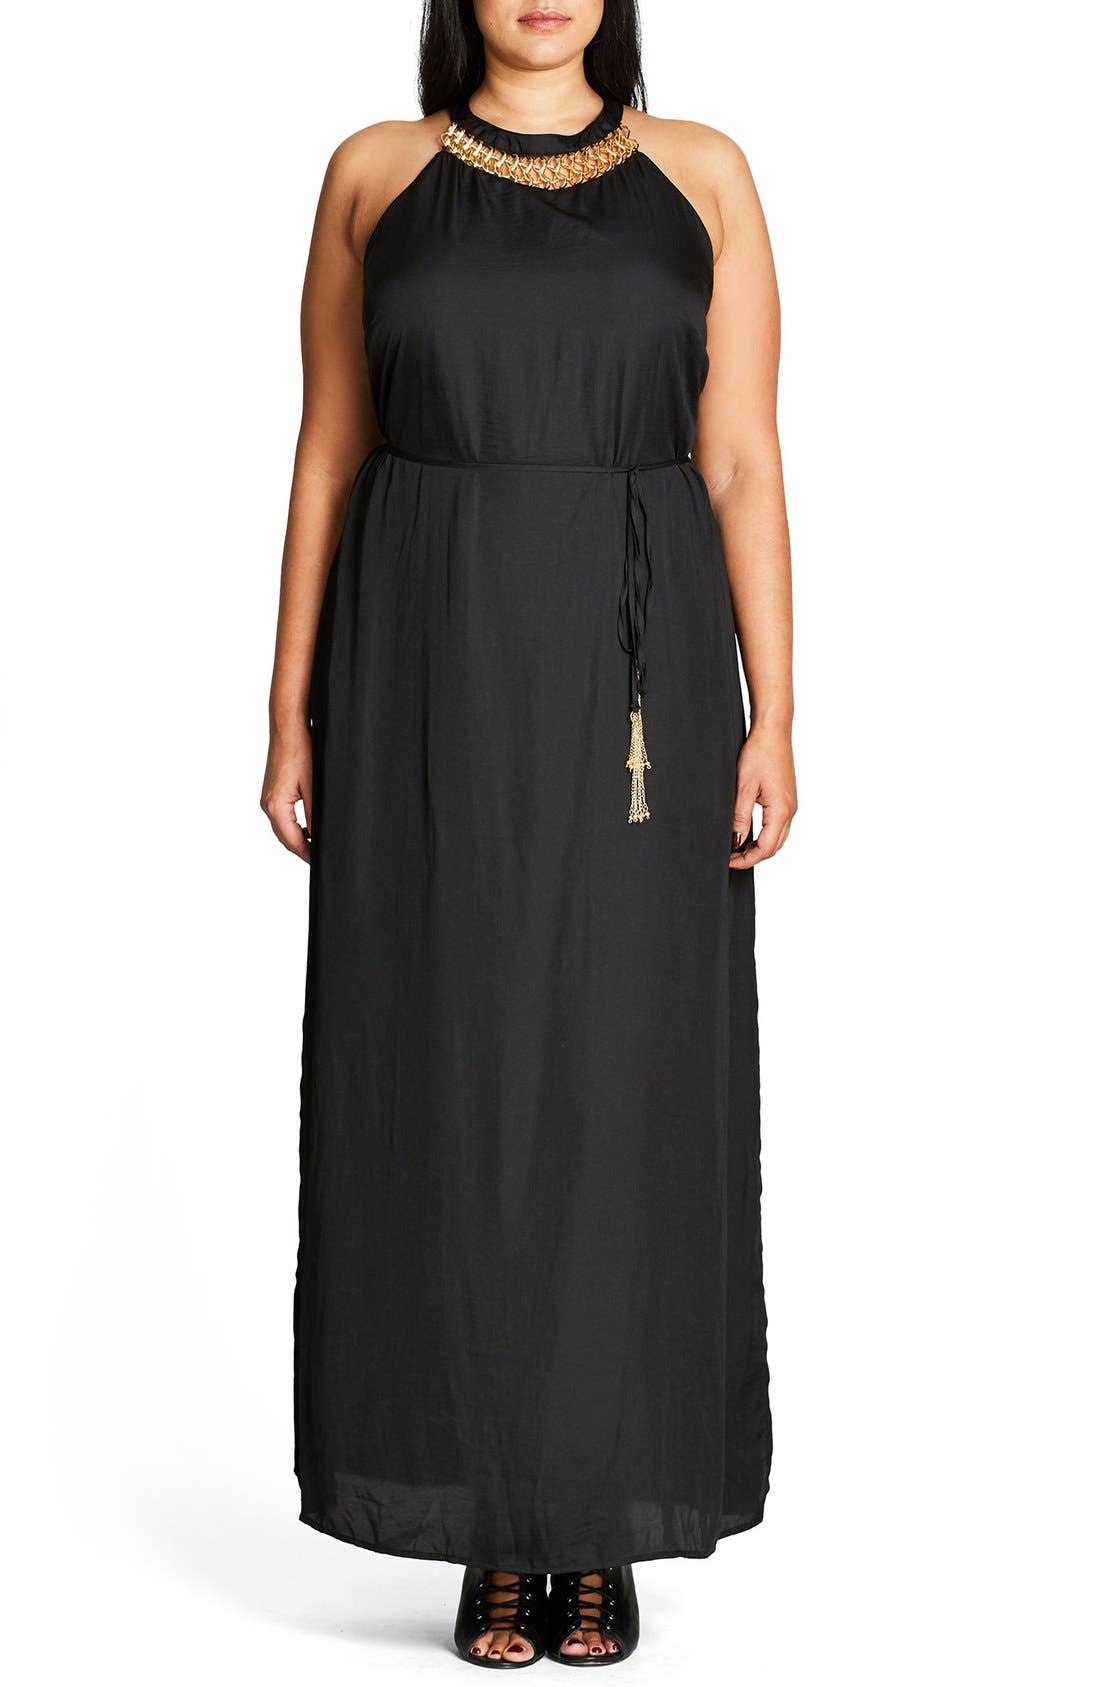 Alternate Image 1 Selected - City Chic Ring Detail Maxi Dress (Plus Size)